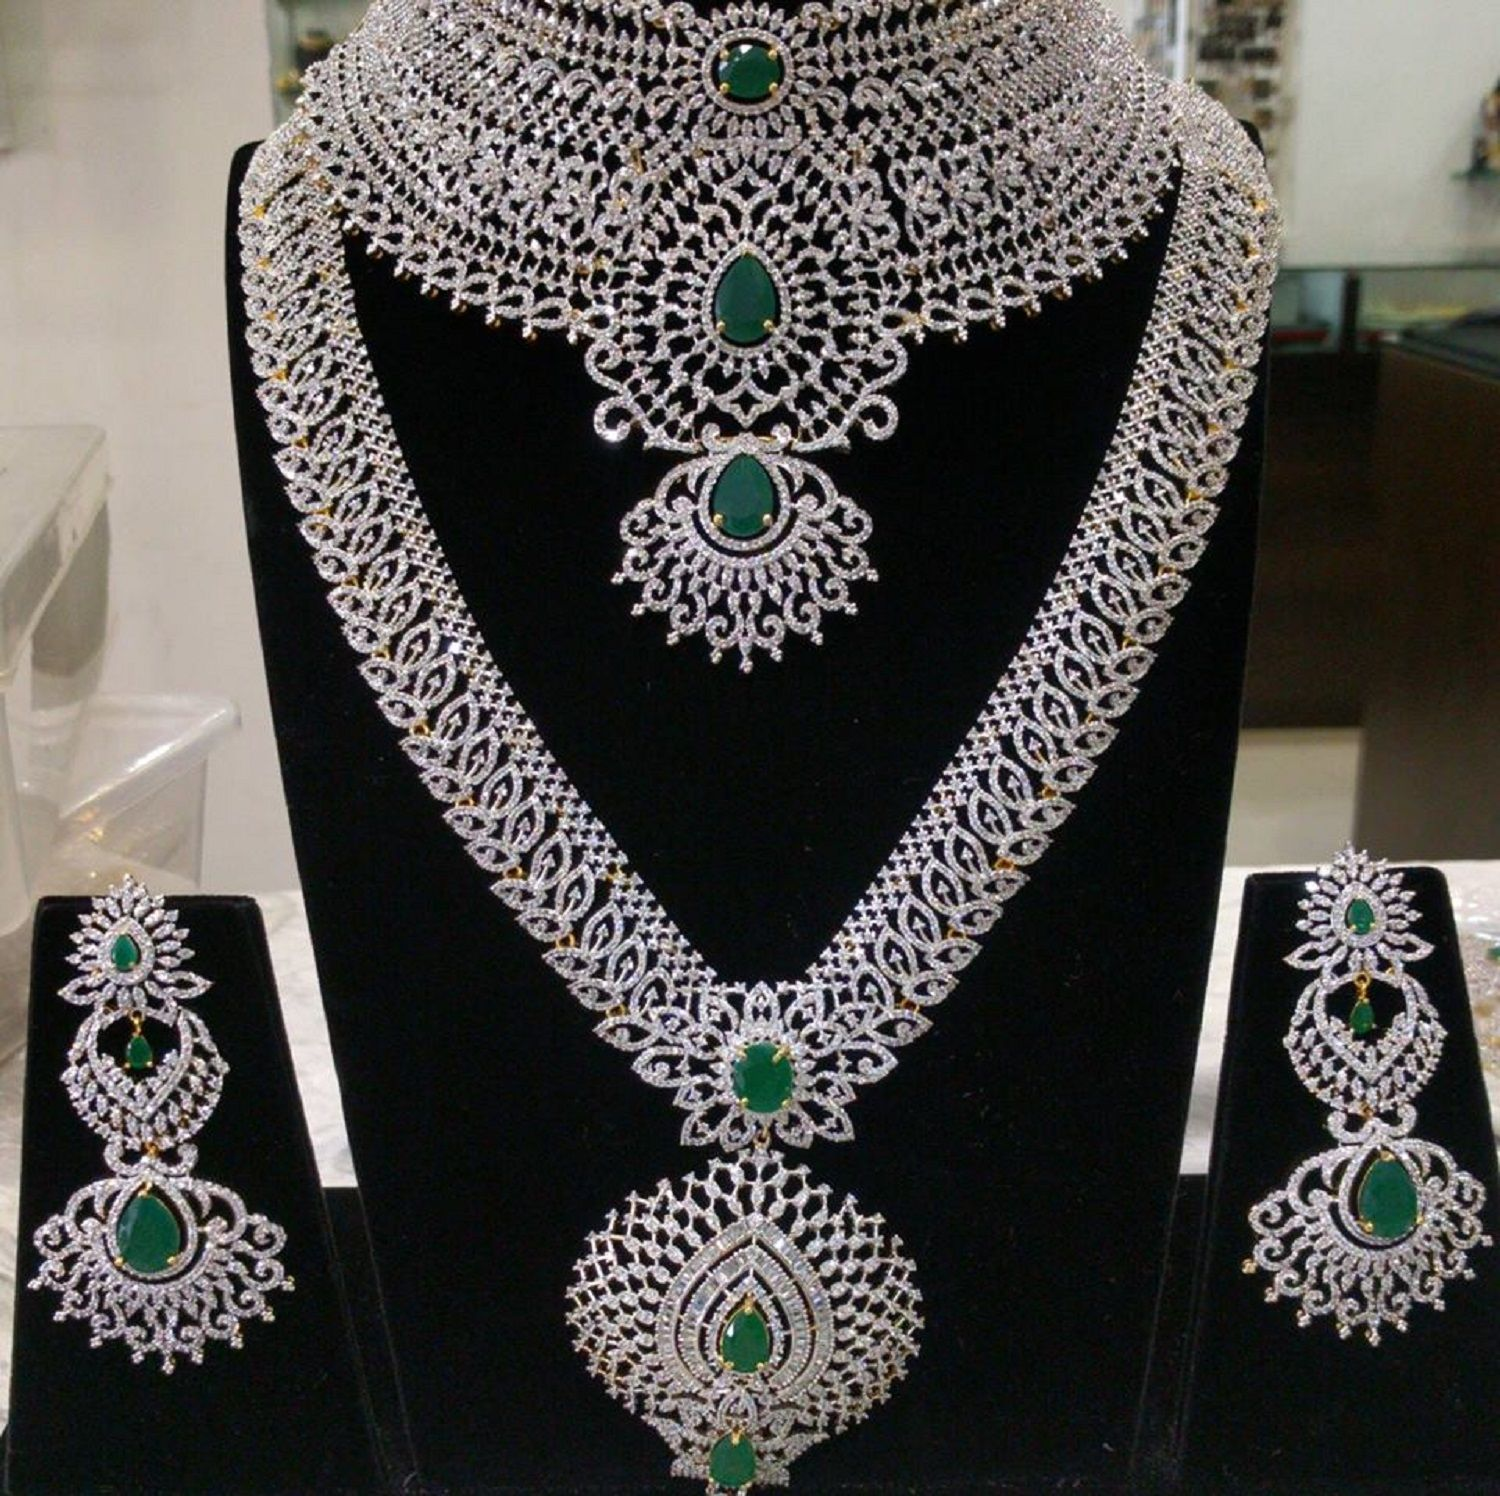 48a5b76134 The Grand Bridal Set with a Broad Collar Choker, Long Necklace and  Earrings(Push Style) in American Diamonds & Emeralds (1gm Gold) - Indian  Wedding Jewelry ...